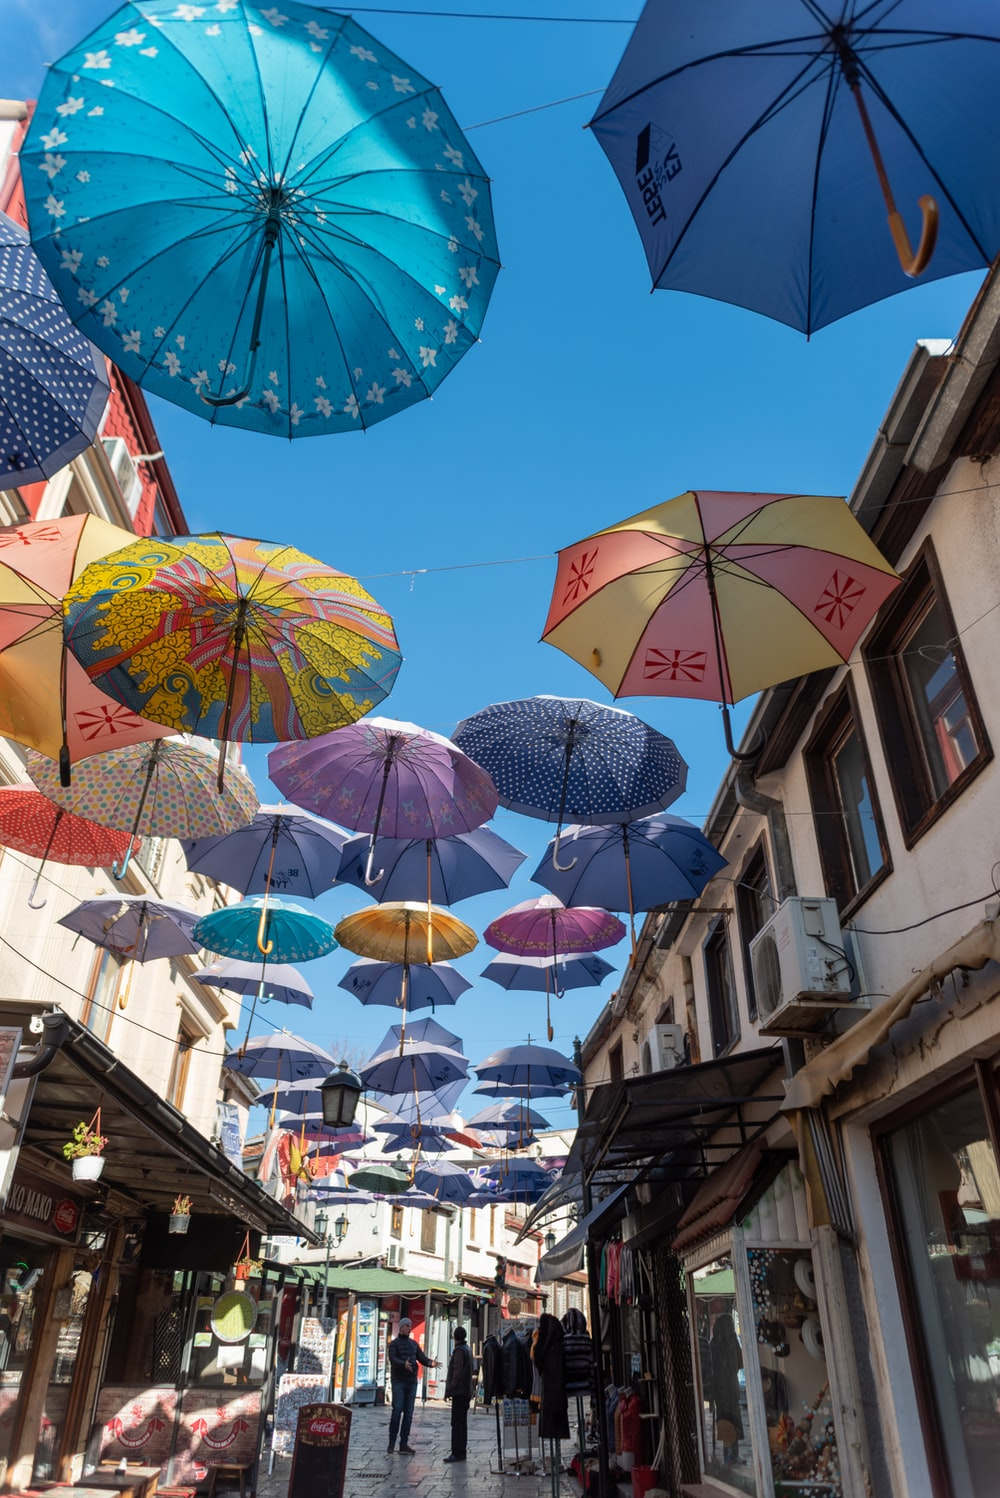 assorted umbrellas hanging on wire during daytime